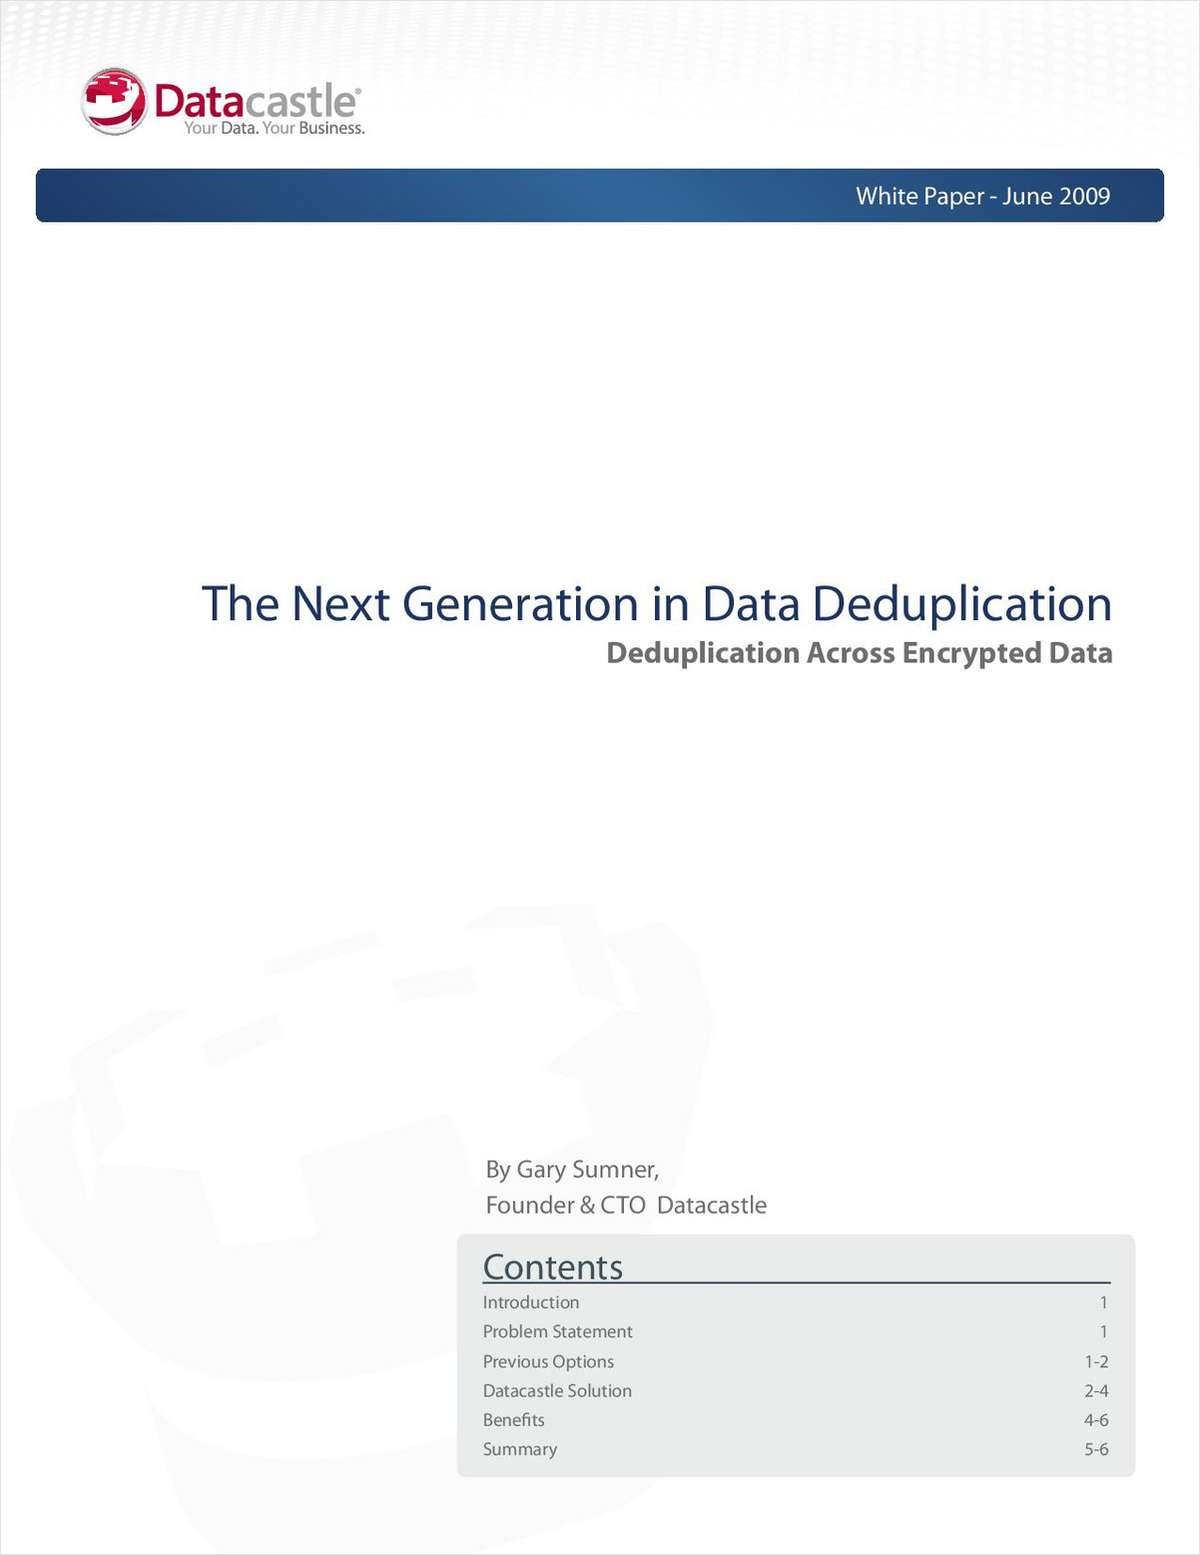 The Next Generation in Data Deduplication - Deduplication Across Encrypted Data